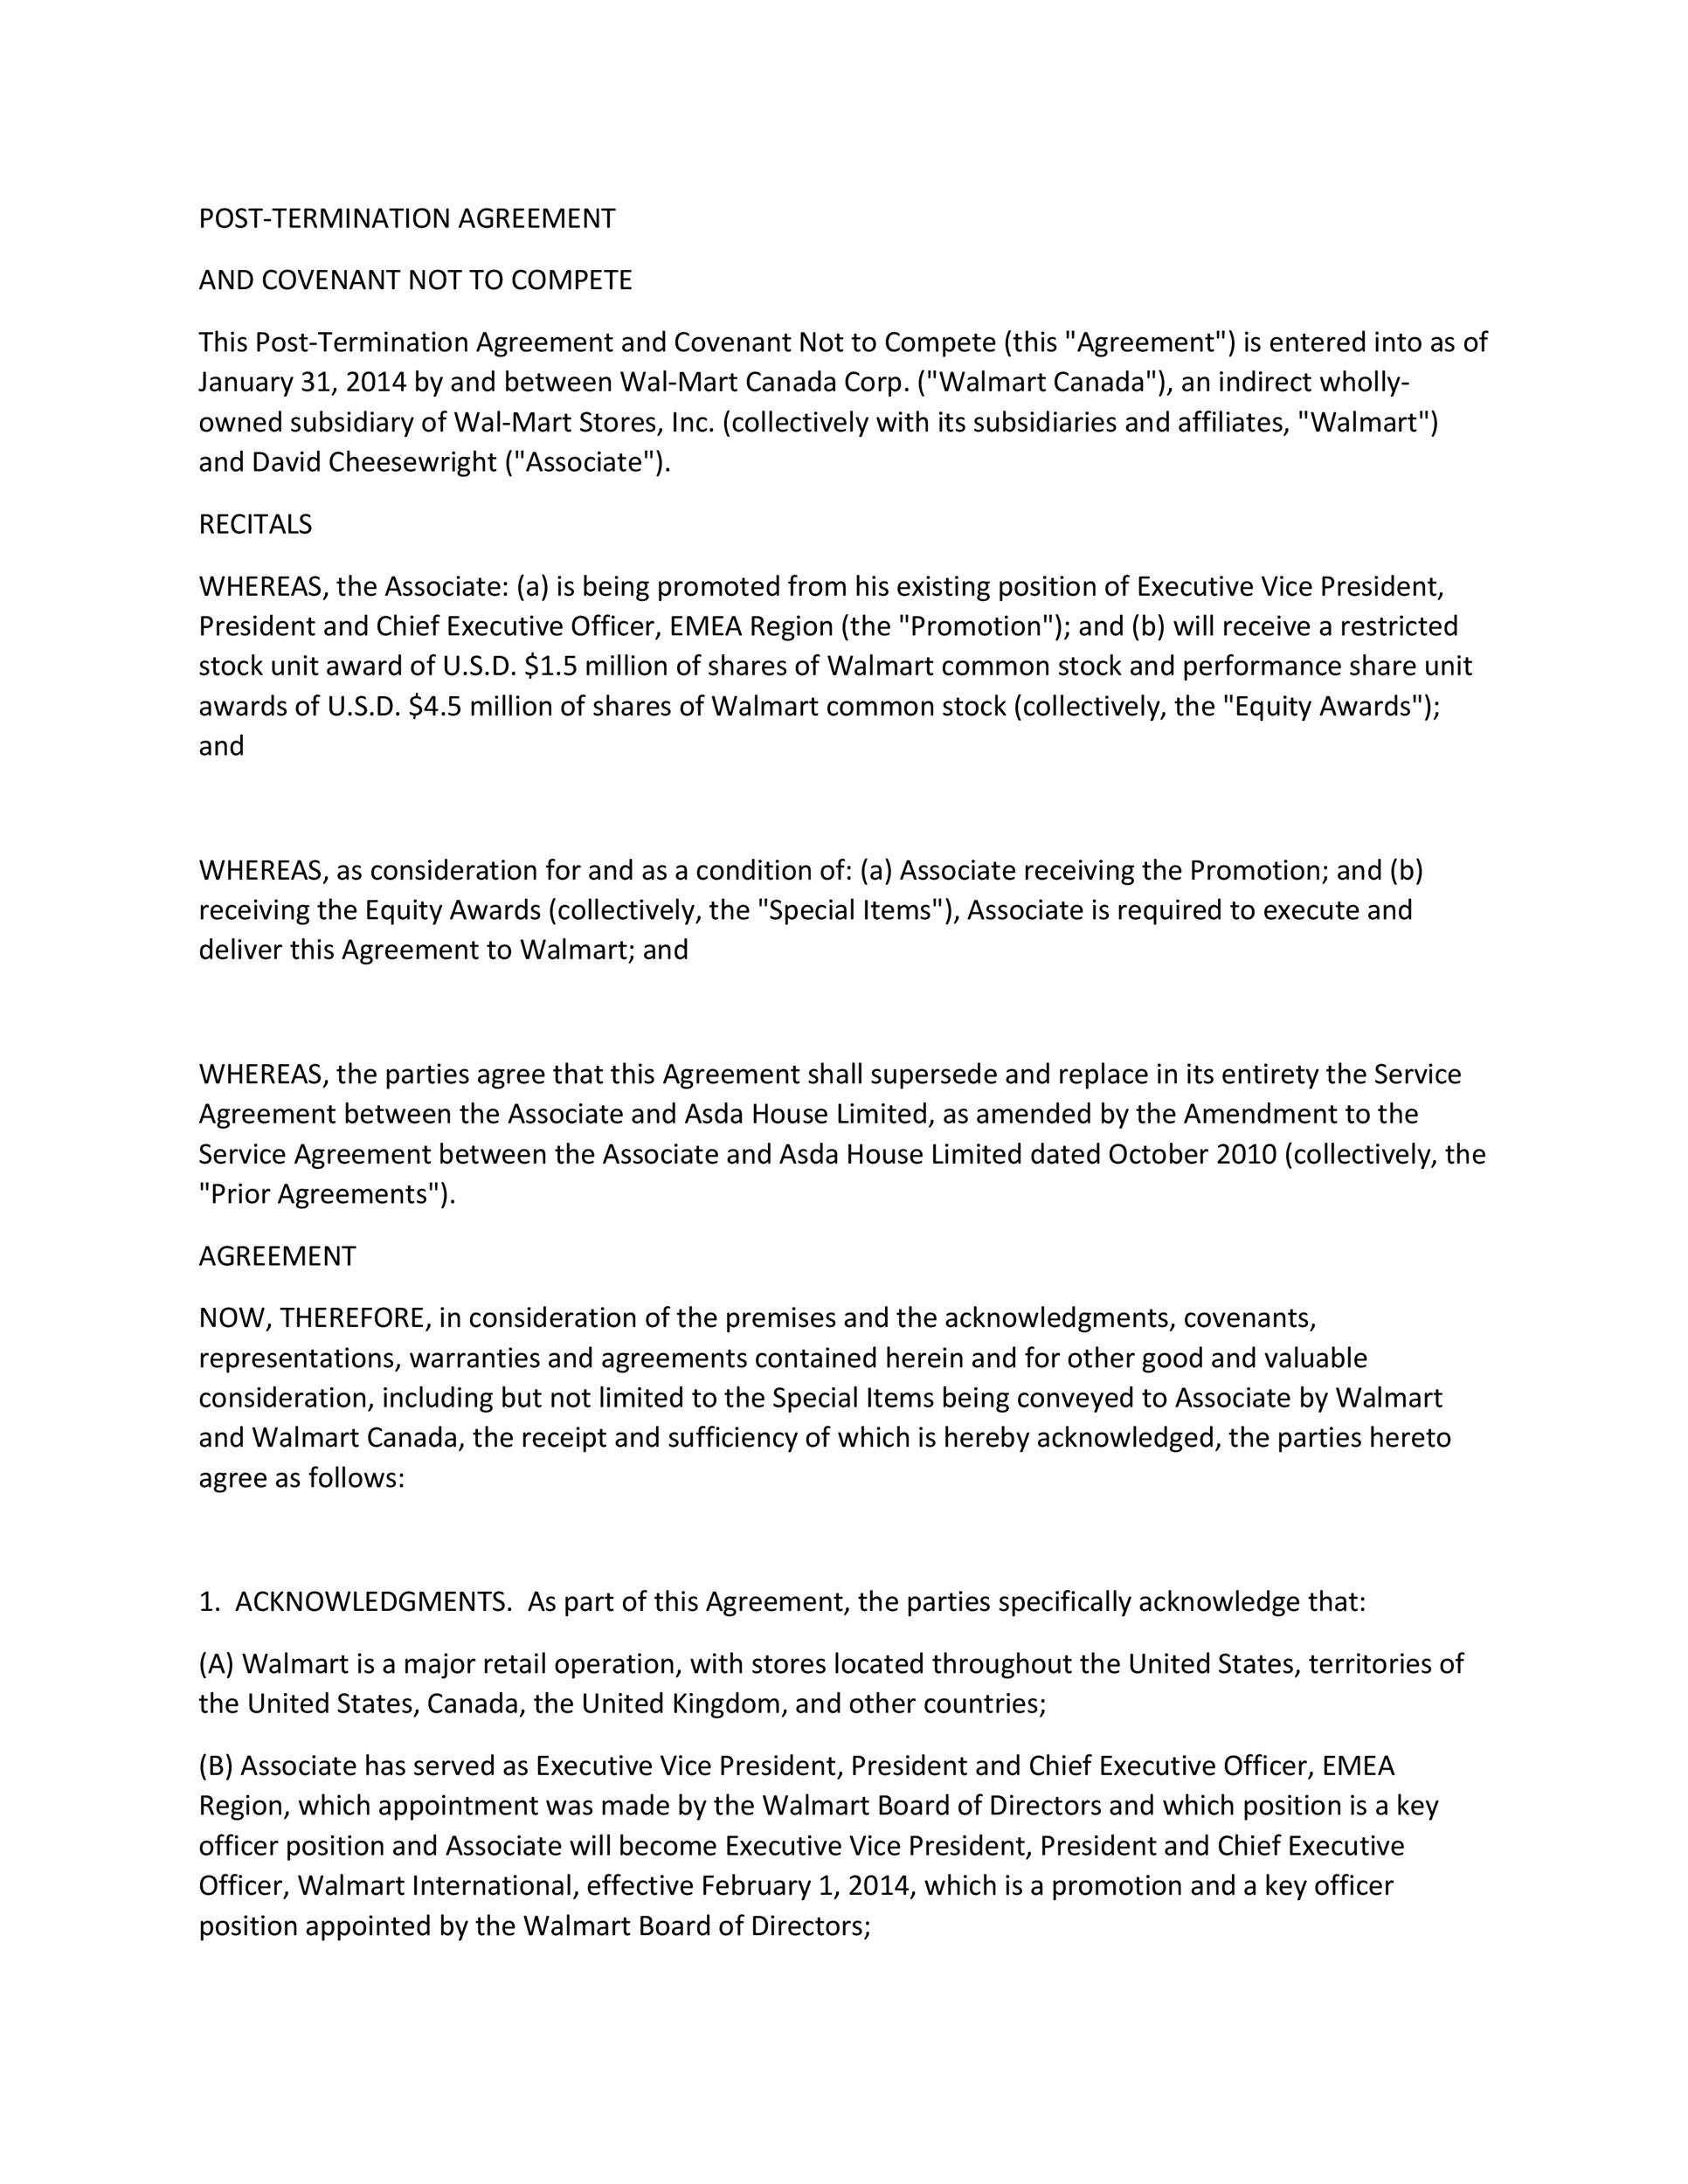 Free Non Compete Agreement Template 10